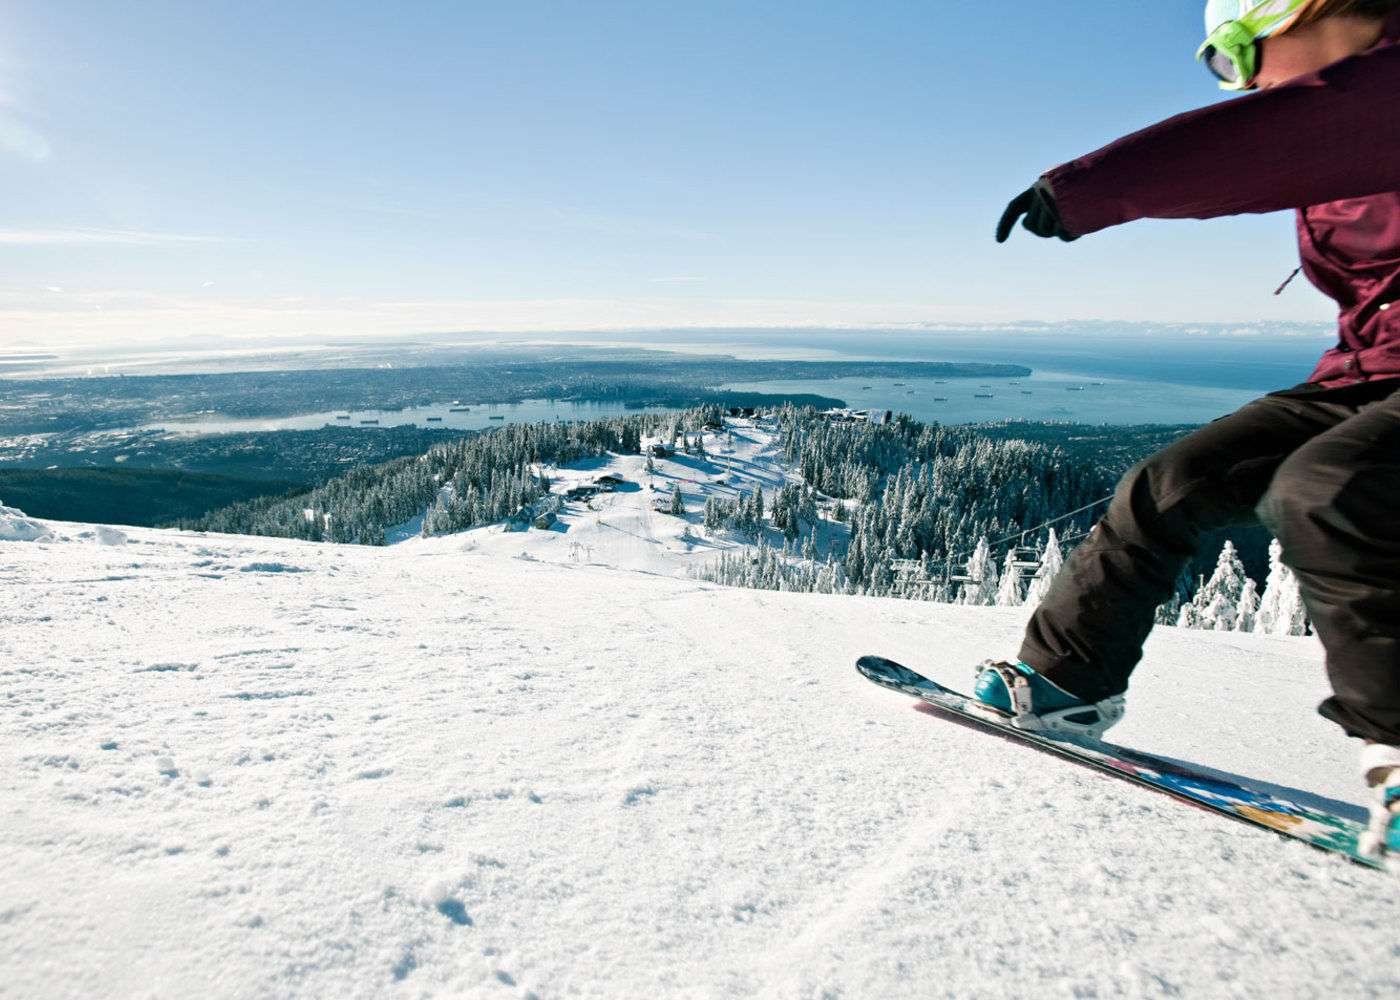 Snowboarding on Grouse Mountain, Vancouver, BC